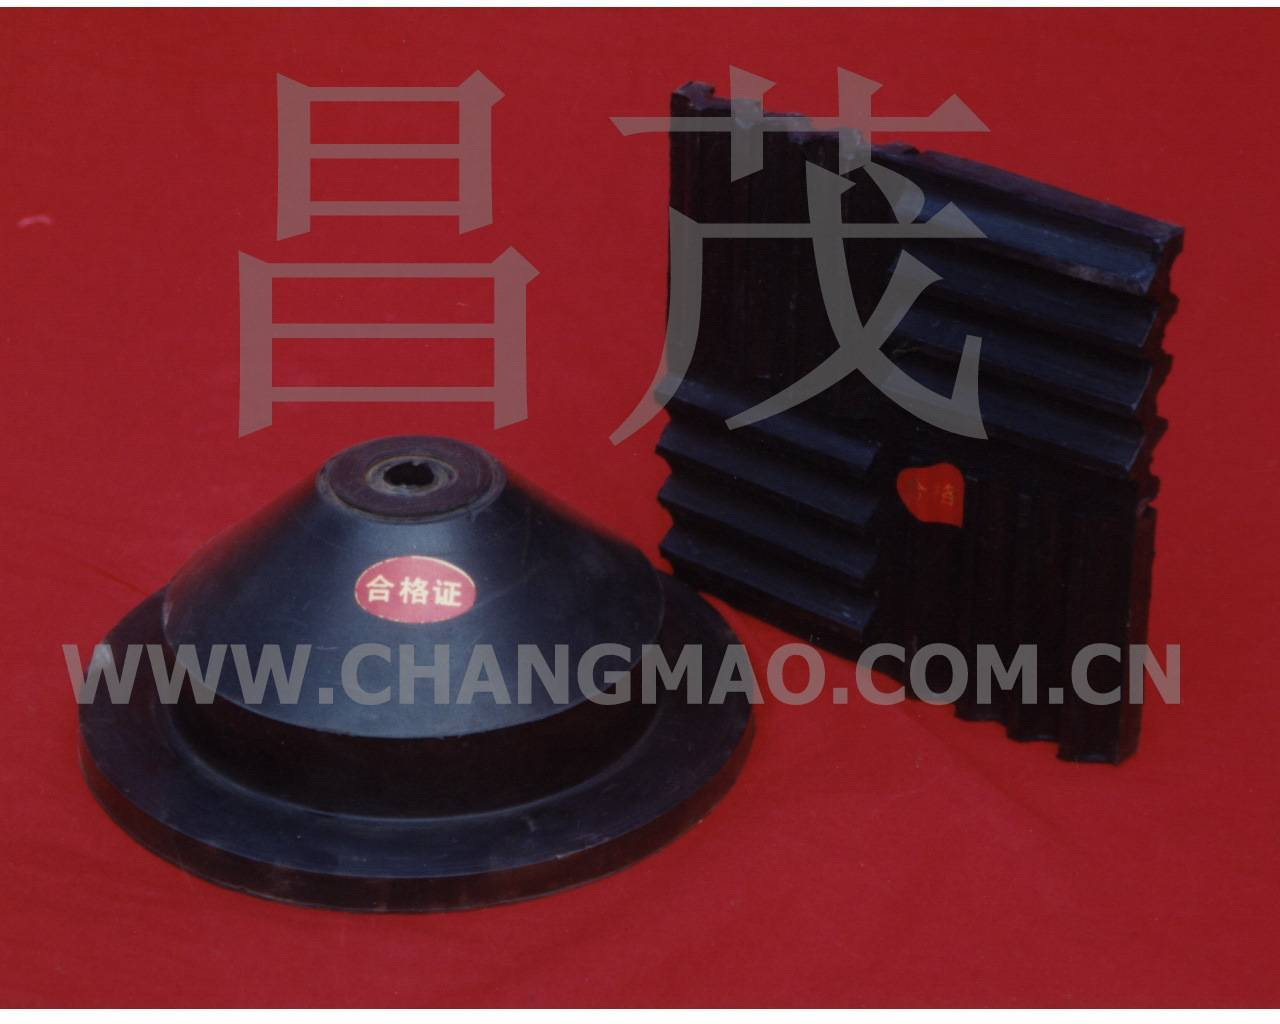 JGD-D rubber vibration isolating pad